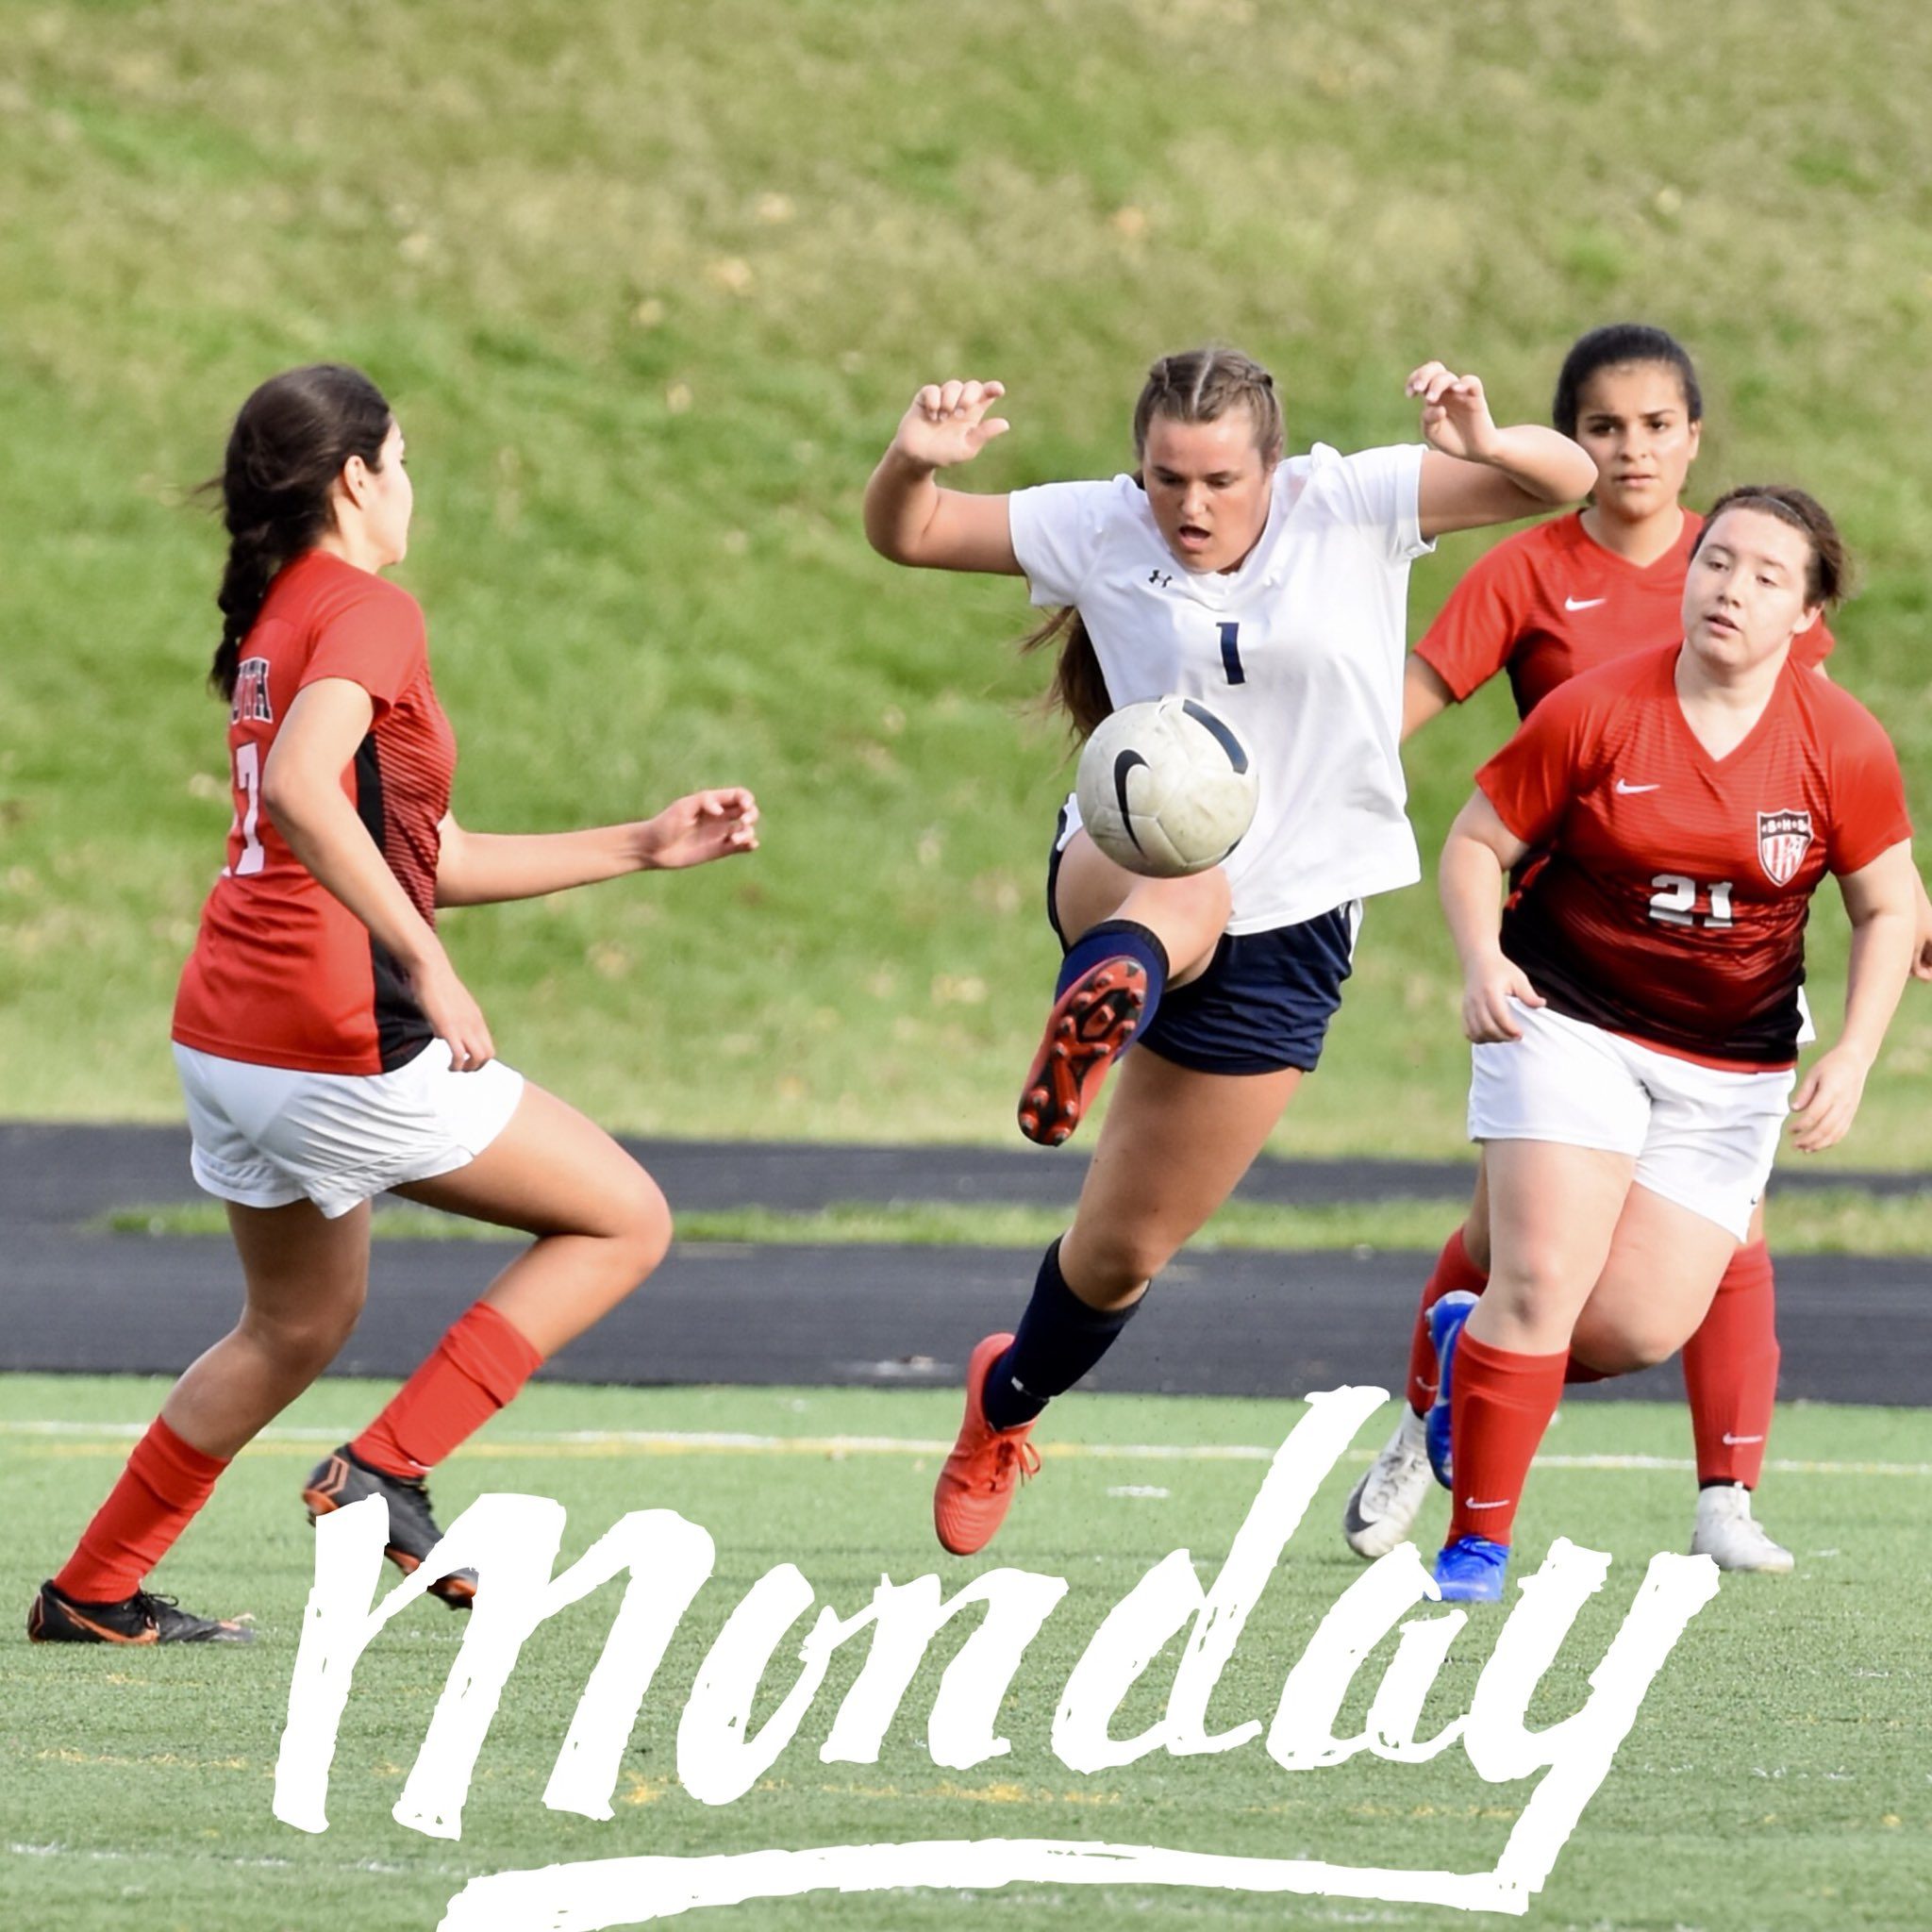 @LCGirlsSoccer_  It's Monday🤗 AM team practice then team brunch👊🏼 #believe #Team>I   @LewisCentralCSD @IGHSAU https://t.co/ommgSJywOD